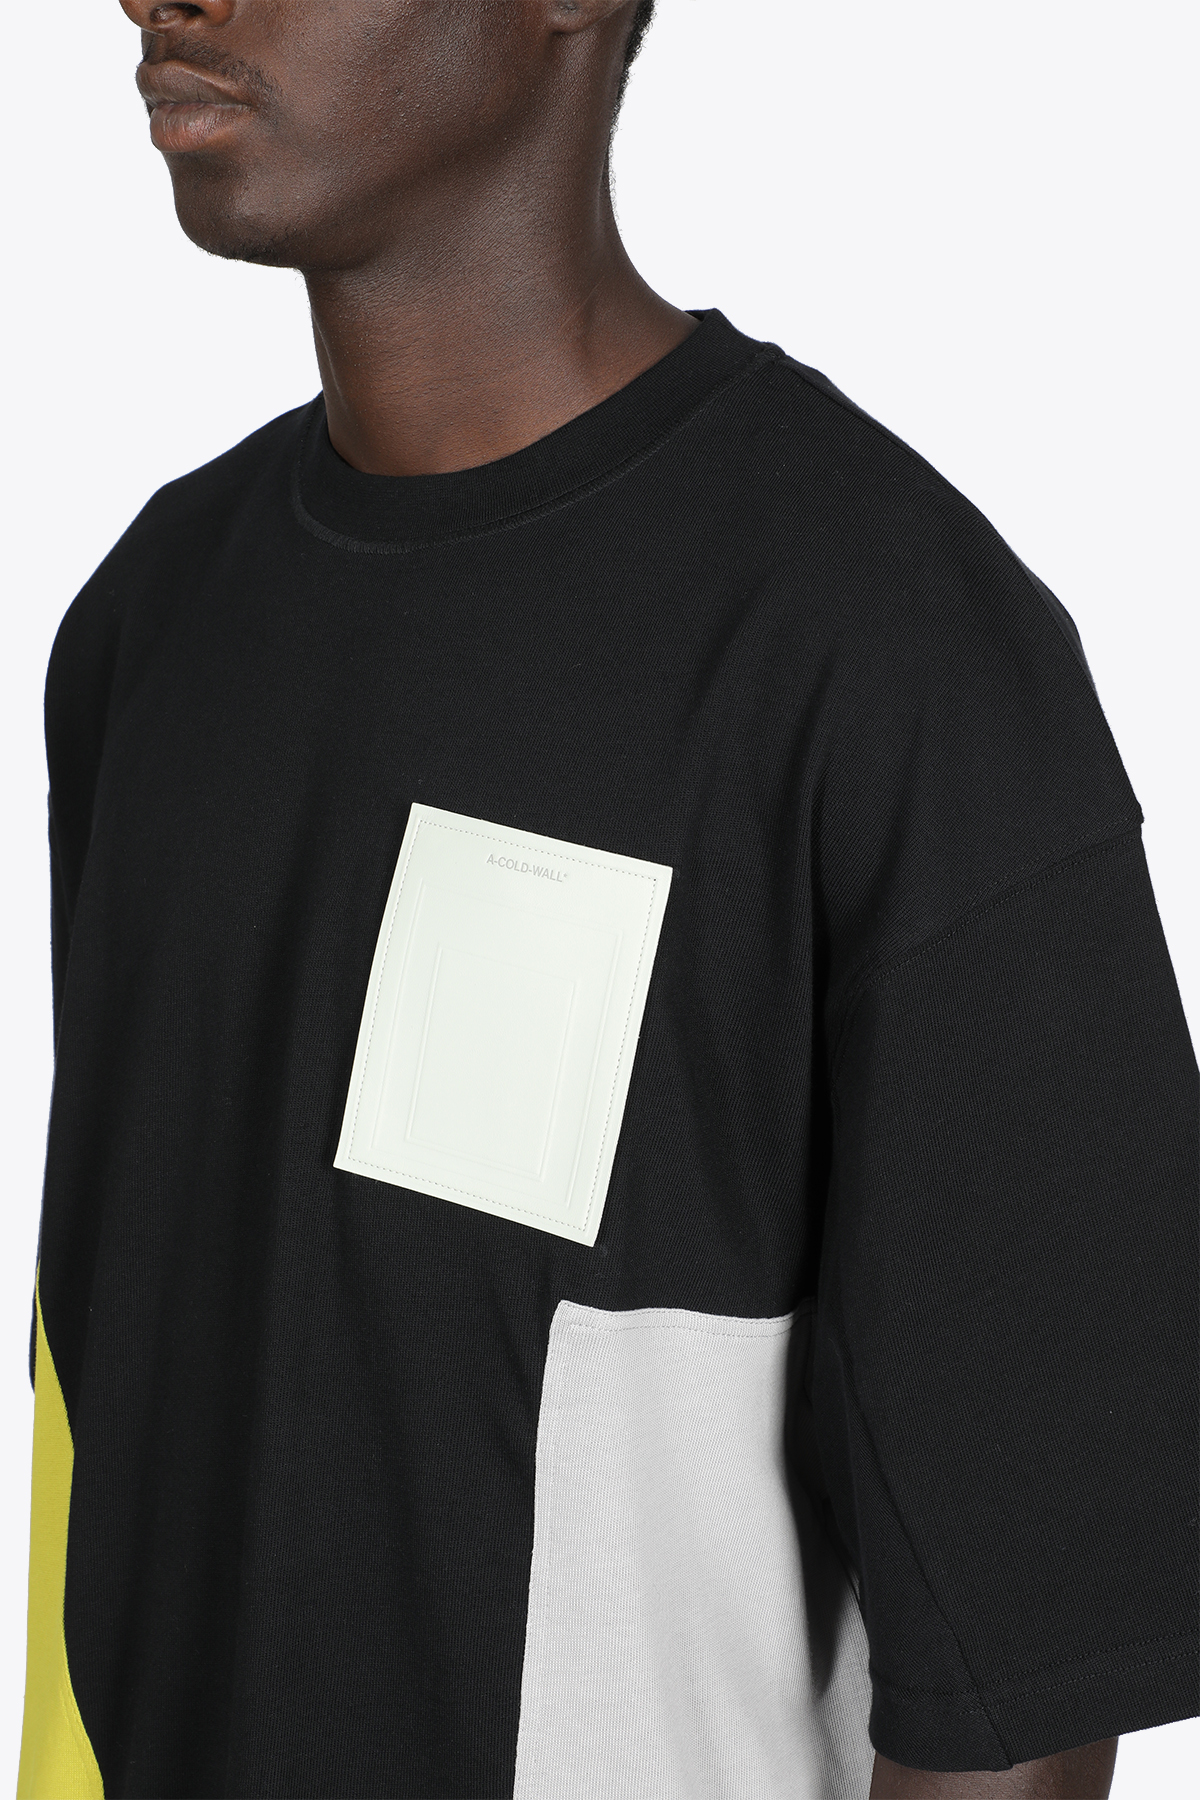 CONTRAST PANEL SS T-SHIRT A COLD WALL | 8 | ACWMTS051B CONTRAST PANEL SS T-SHIRTBLACK